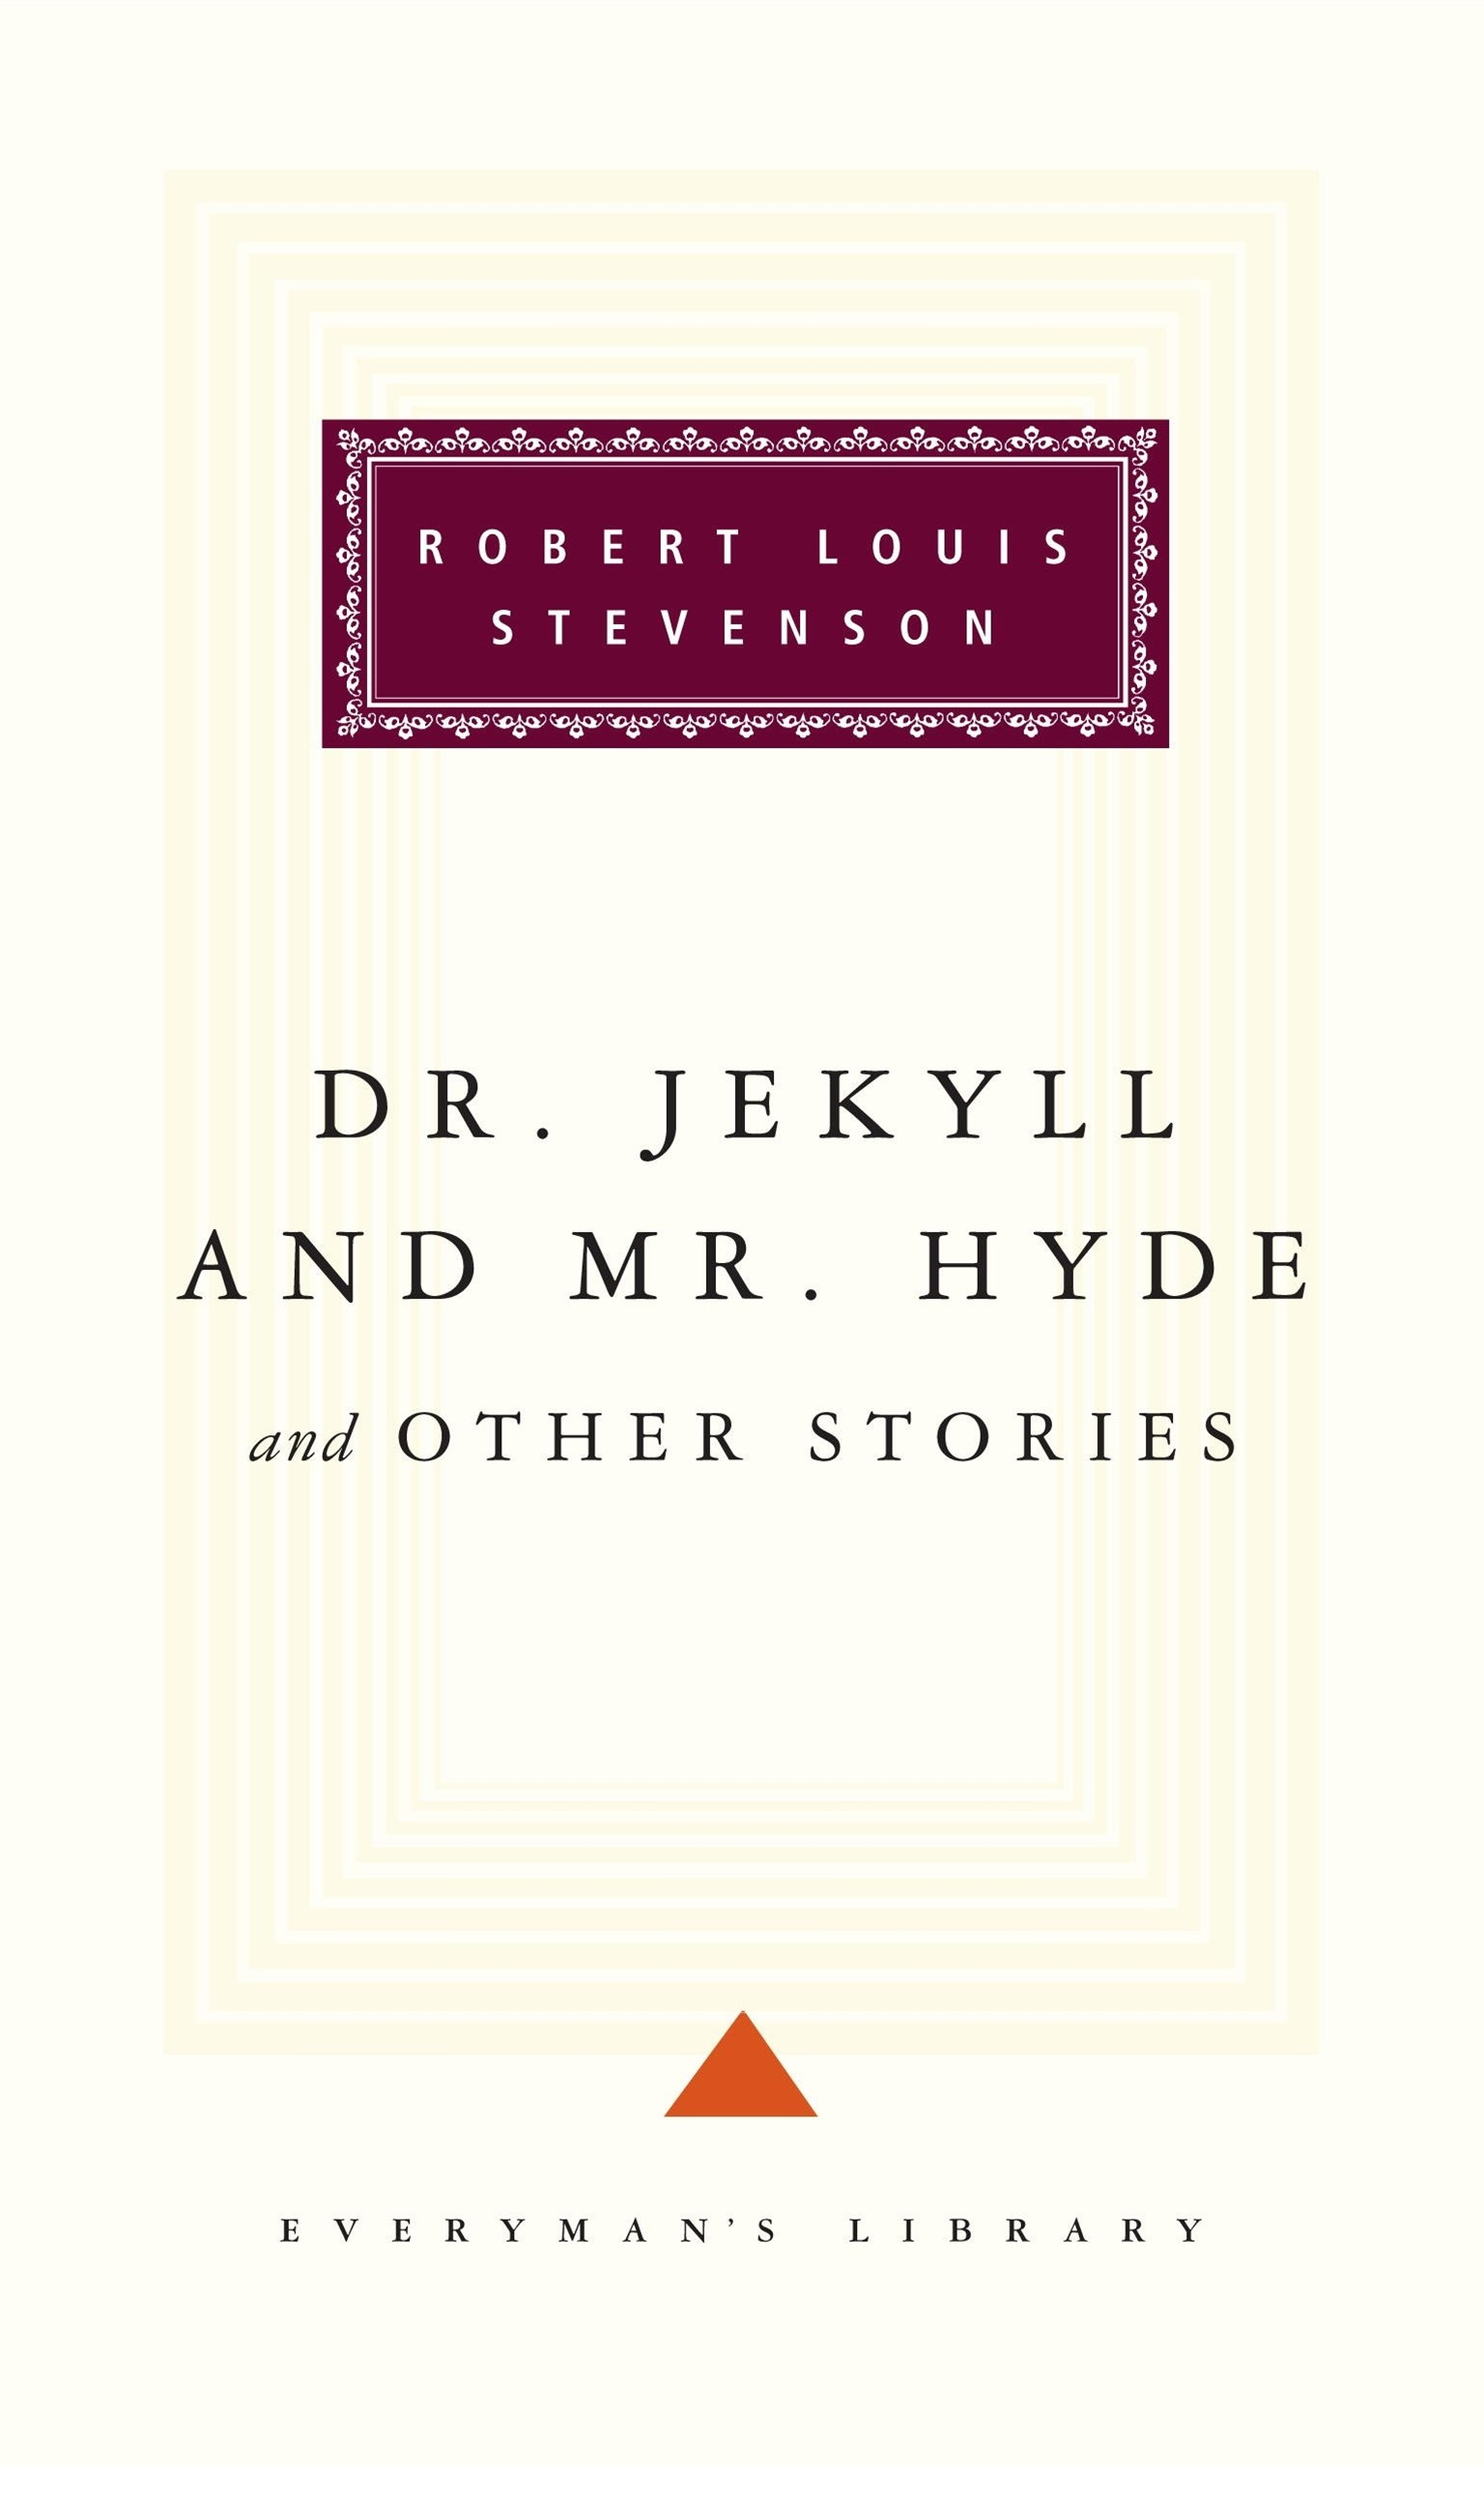 Dr Jekyll and Mr Hyde Other Stories